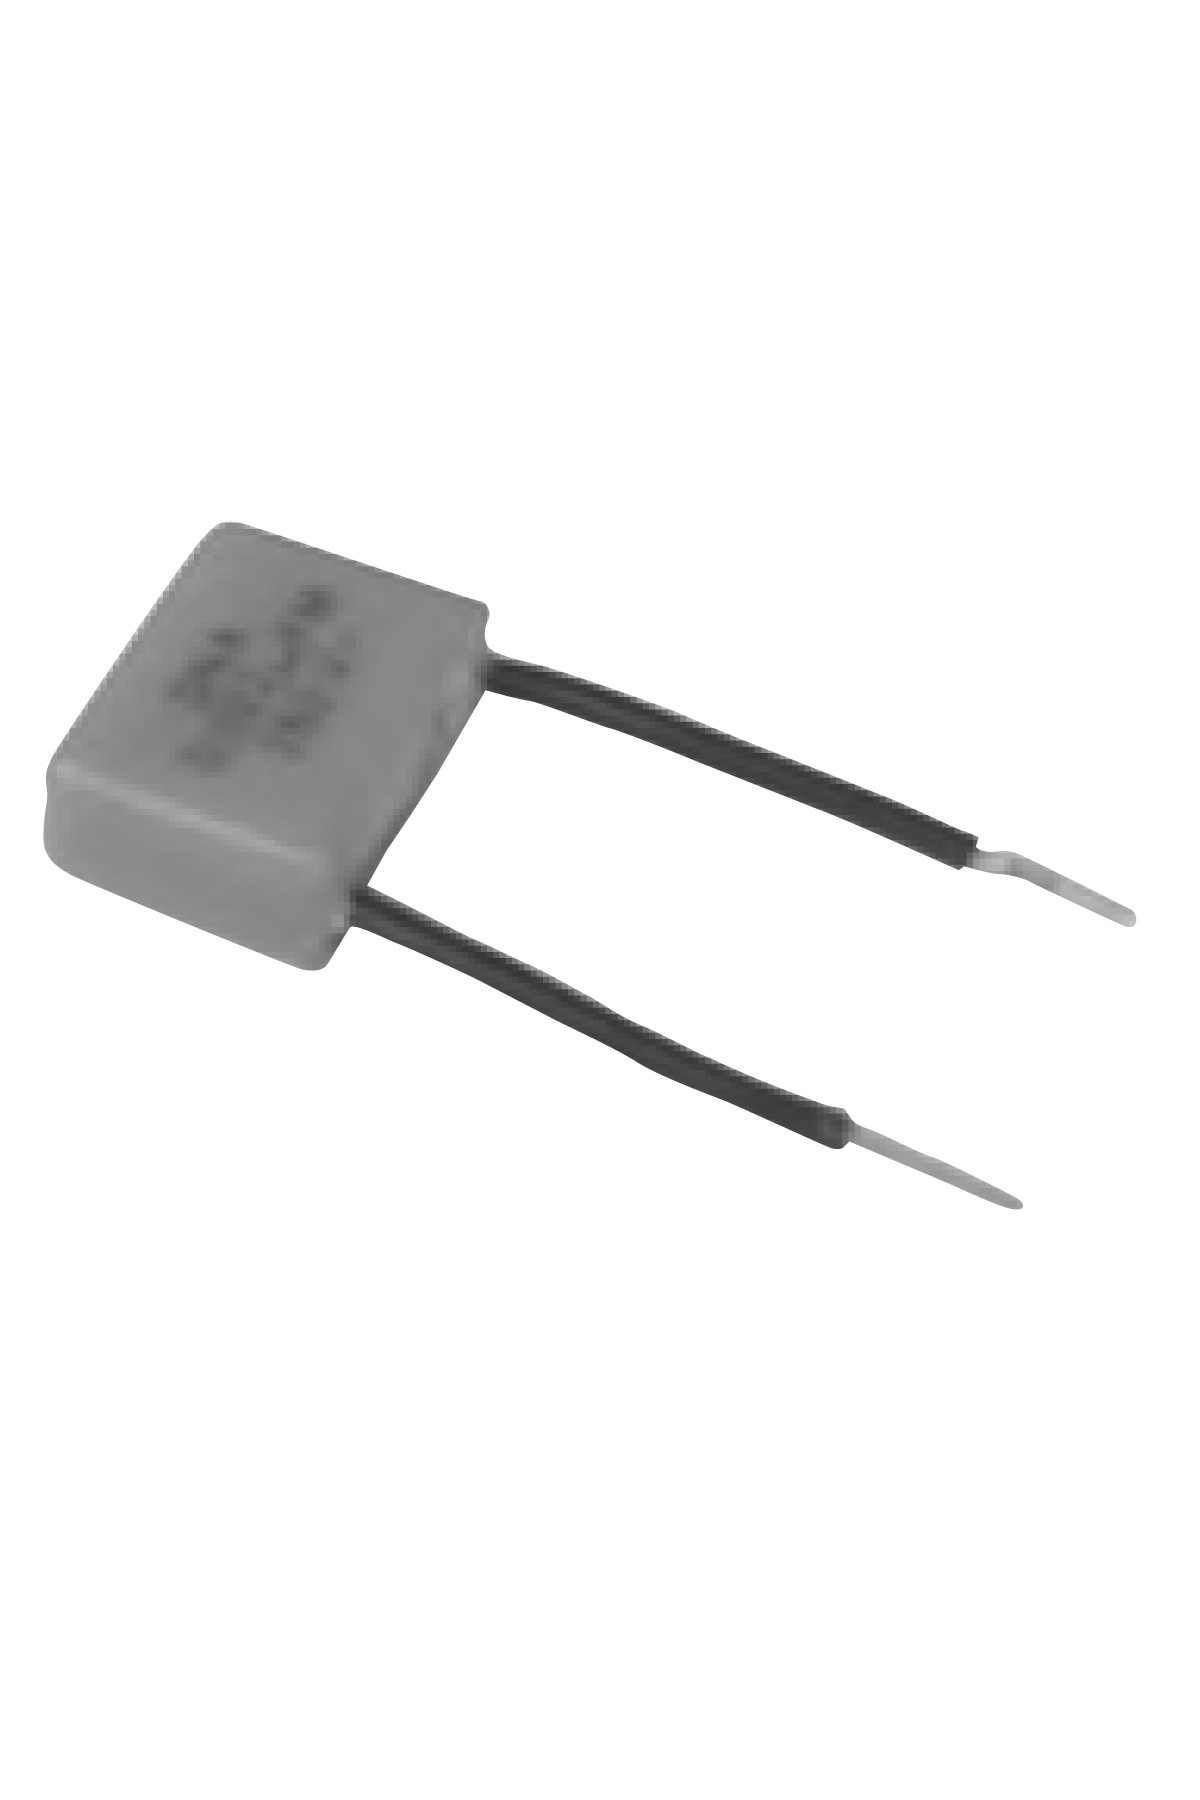 Catalog Electro Cirkel Marine Industry Ac Type Of Capacitor 001uf For This Circuit Electrical 100524filter 001 F 250v Axial